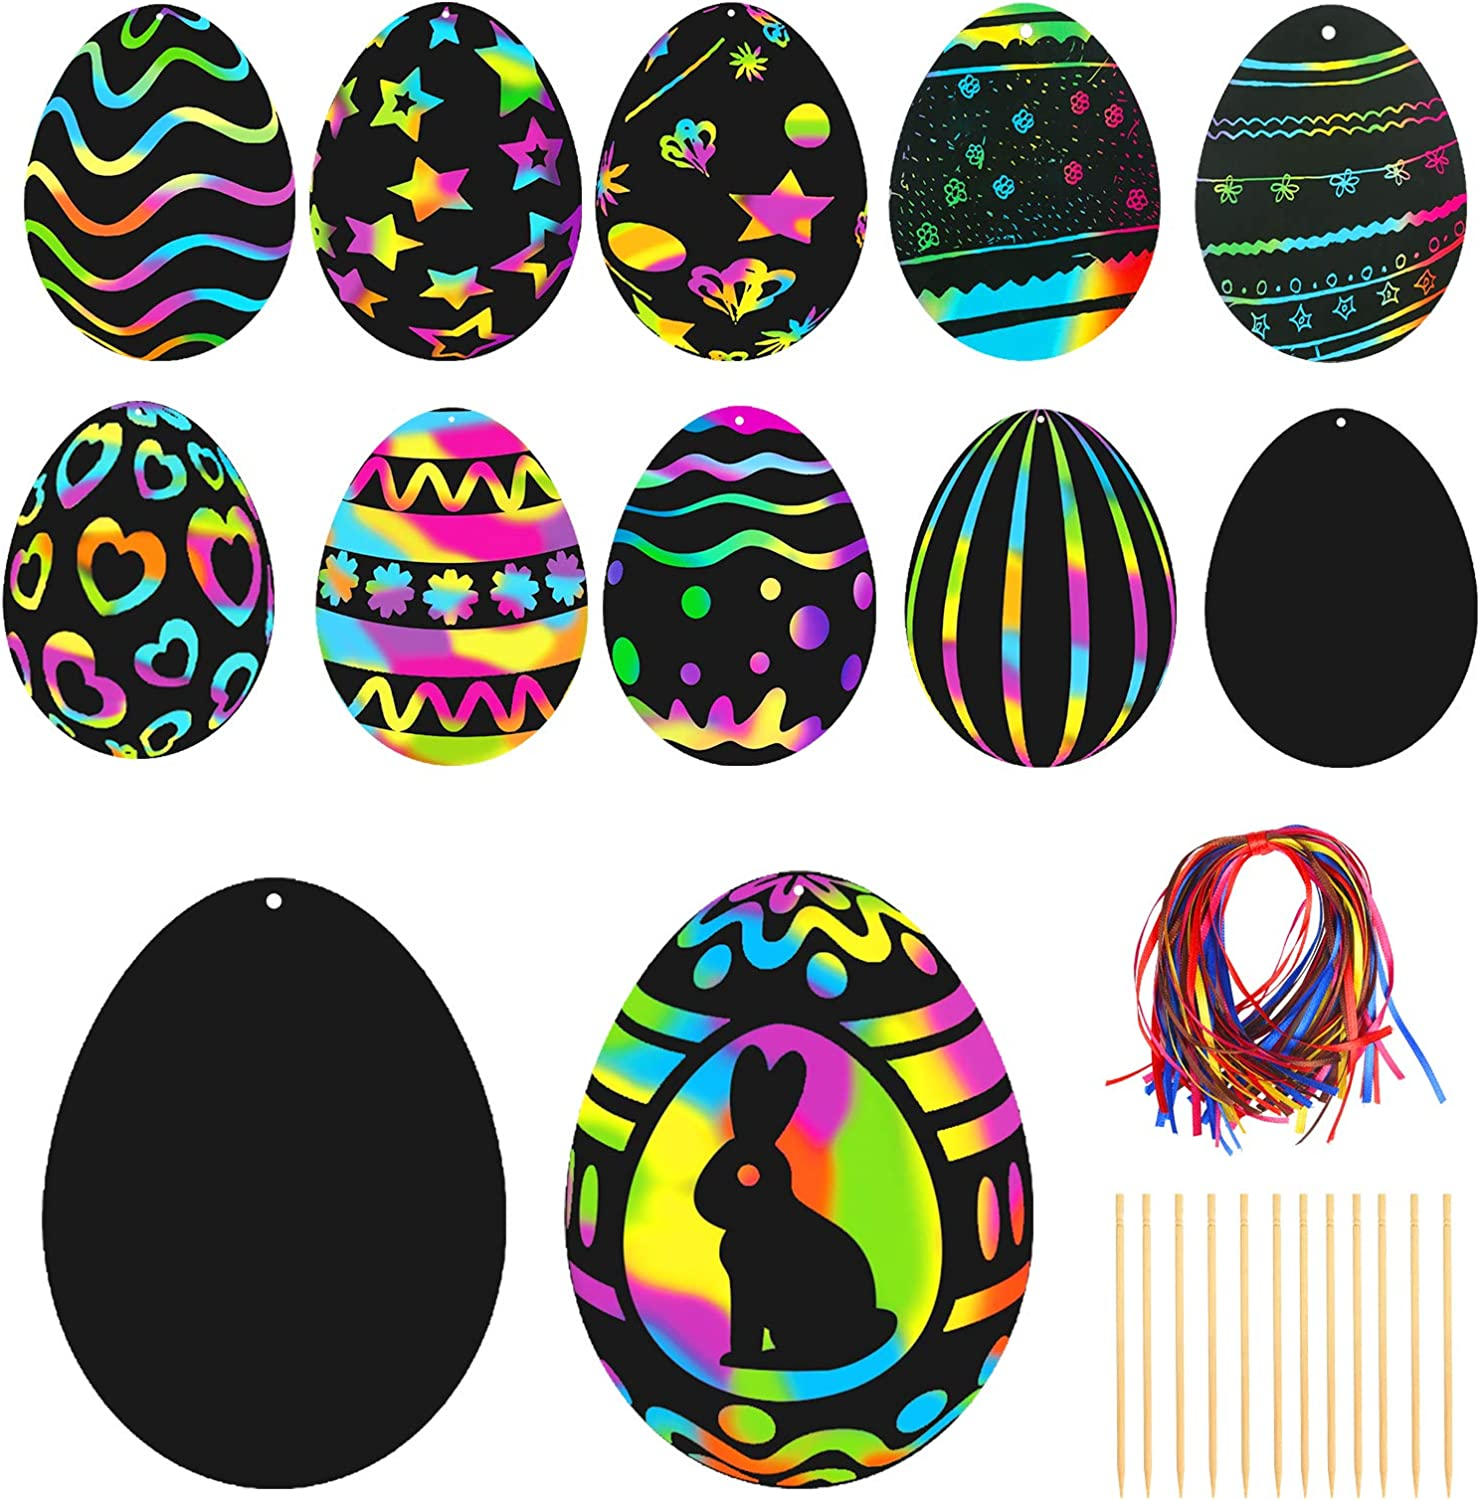 108pcs Easter Scratch Crafts Art Kit Magic Colorful Rainbow Scratch Paper Card Easter Egg Shape with Ribbons Wooden Scratch Tools and Envelopes for Easter Party Egg Hunt Game Classroom Decoration